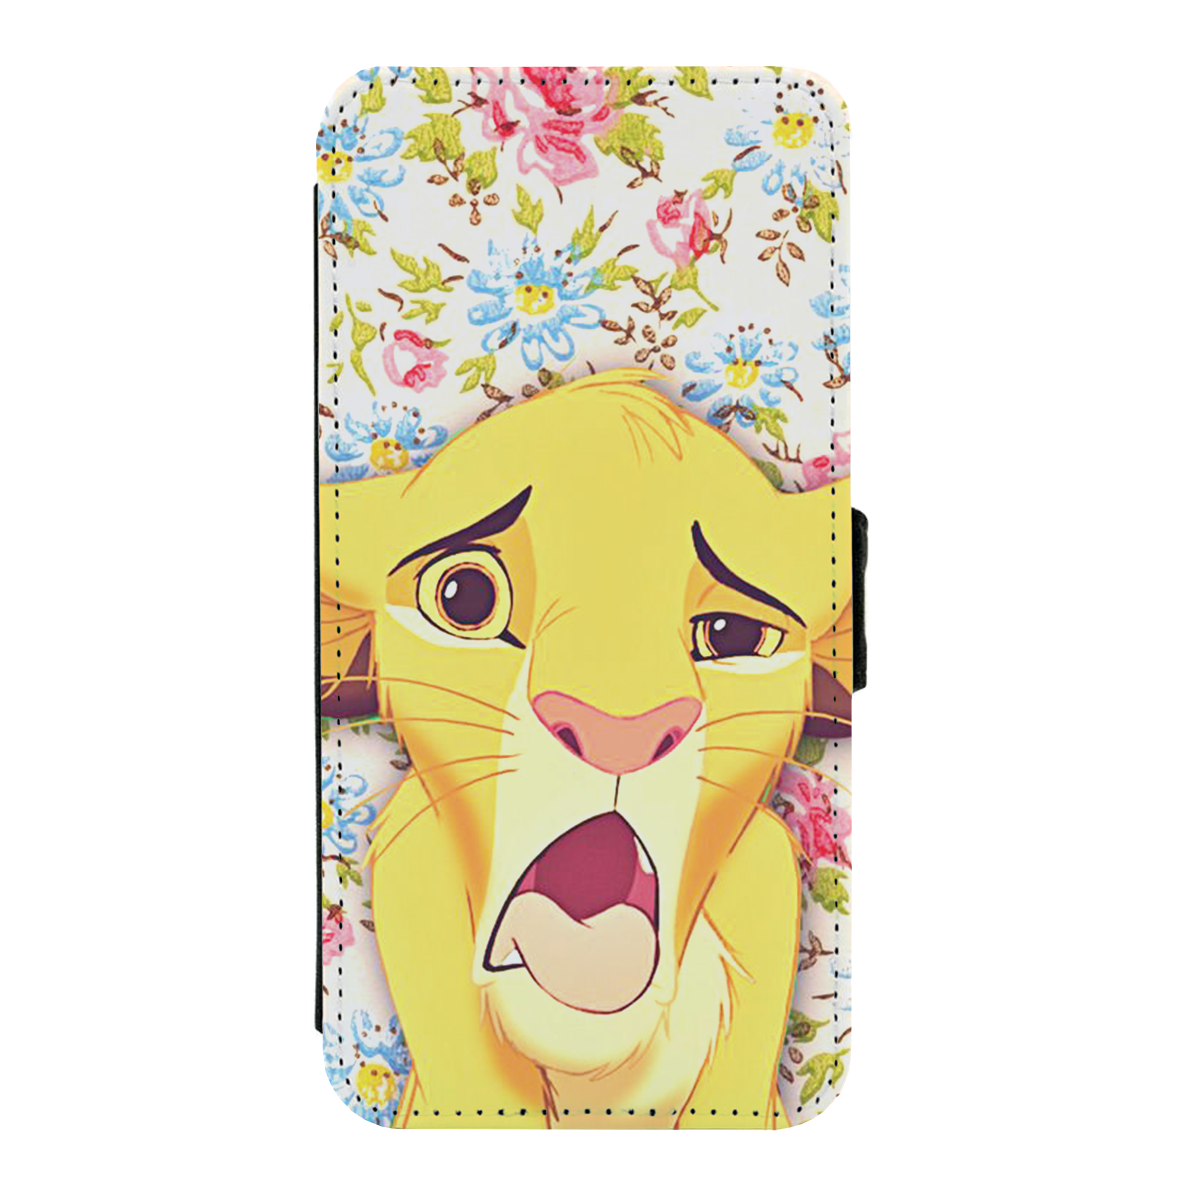 0709a0796185b5 Load image into Gallery viewer, Simba The Lion King Funny Face Disney PU  Leather Flip ...